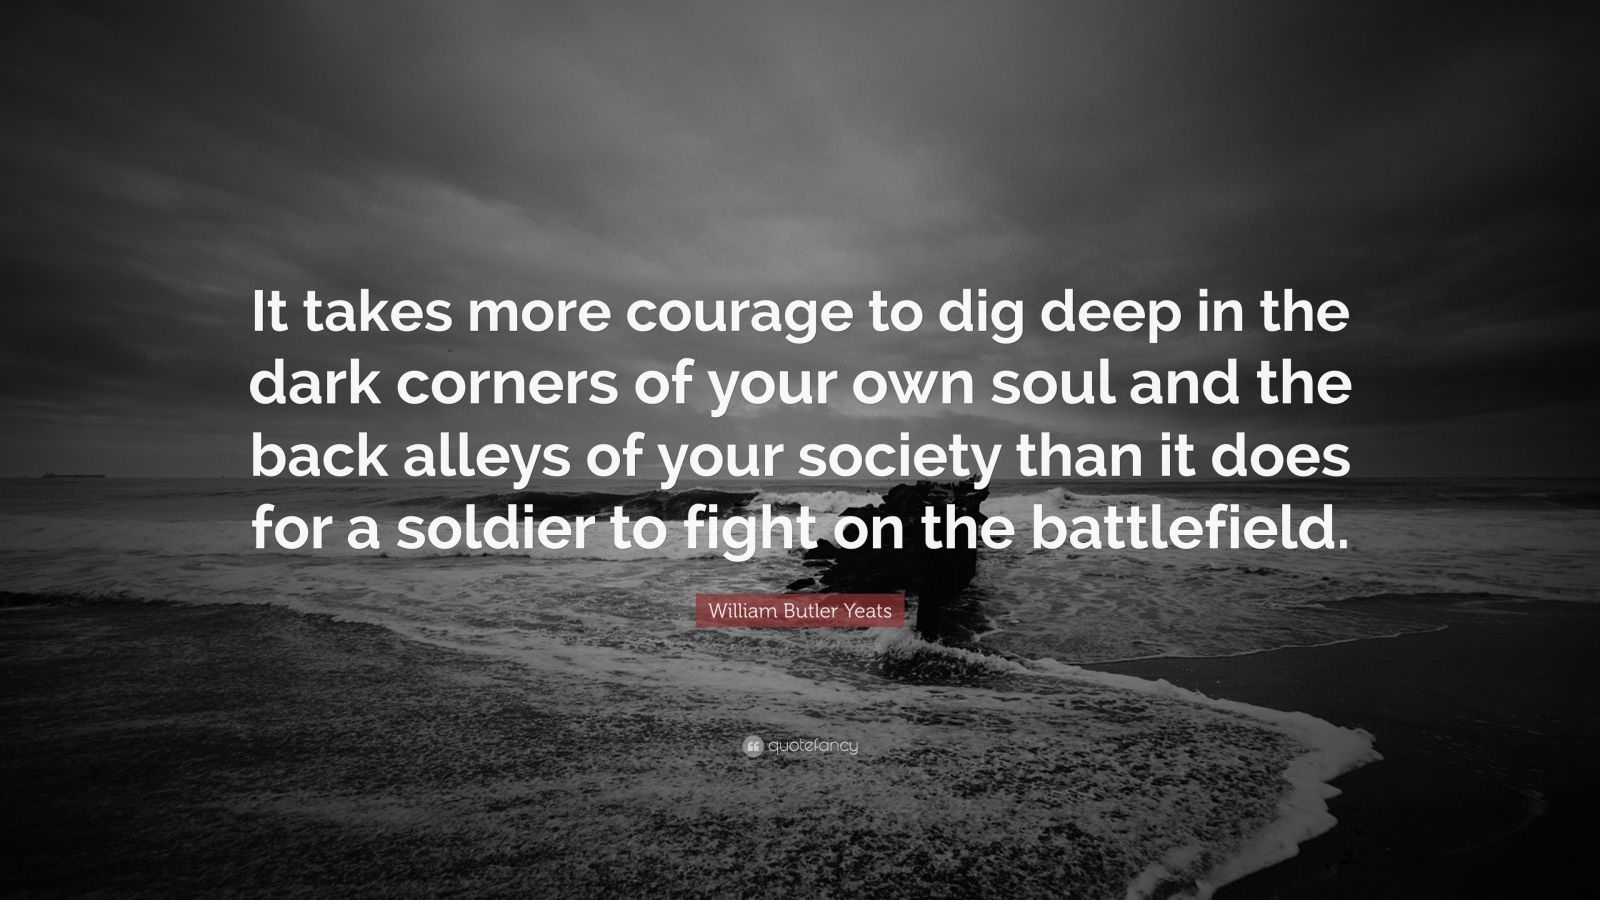 "William Butler Yeats Quote: ""It takes more courage to dig deep in the dark corners of your own soul and the back alleys of your society than it does for a soldier to fight on the battlefield."""